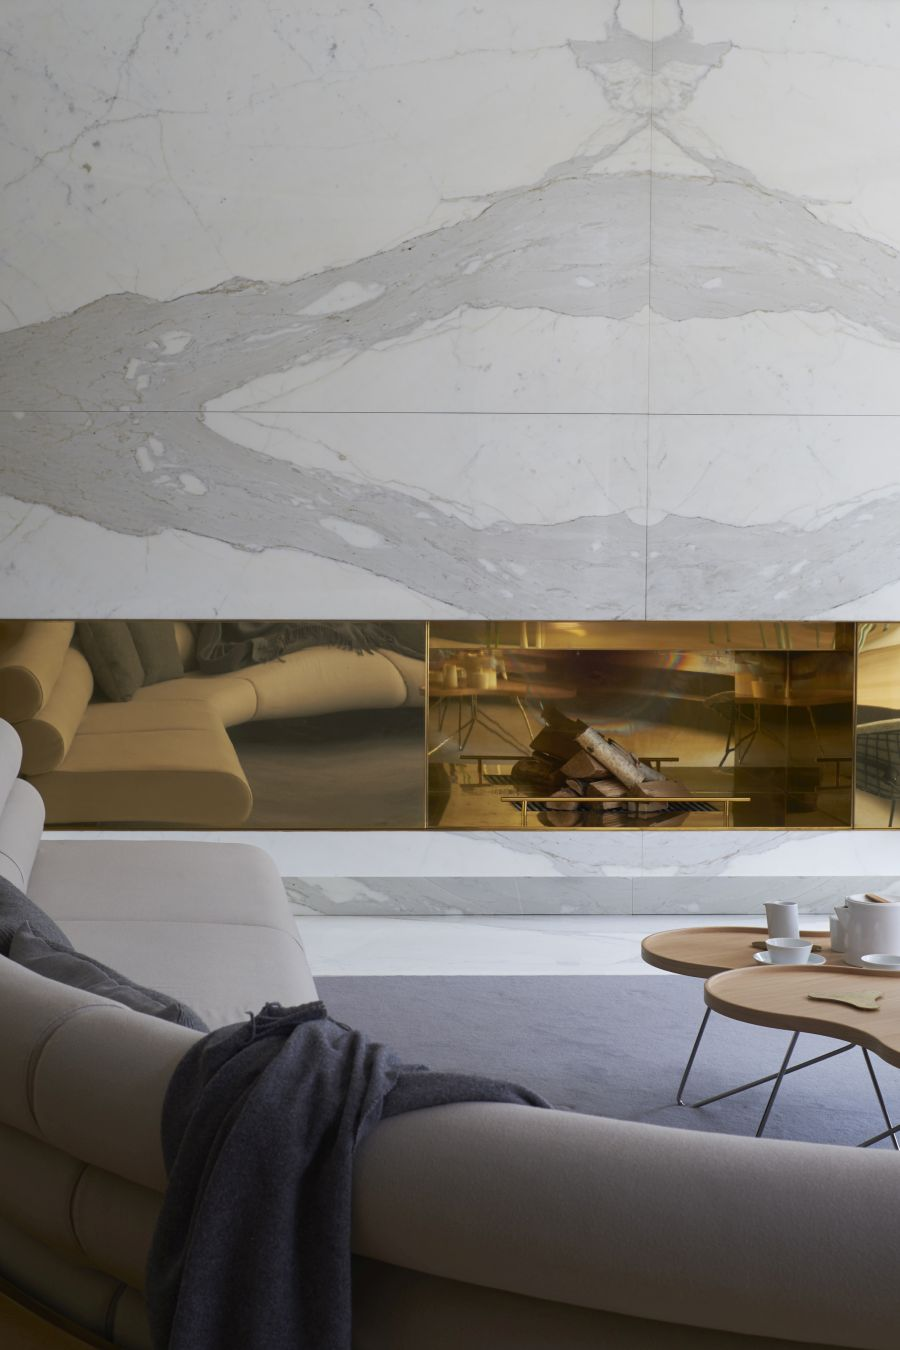 The interior design makes use of strong accent materials and puts an emphasis on texture and shape